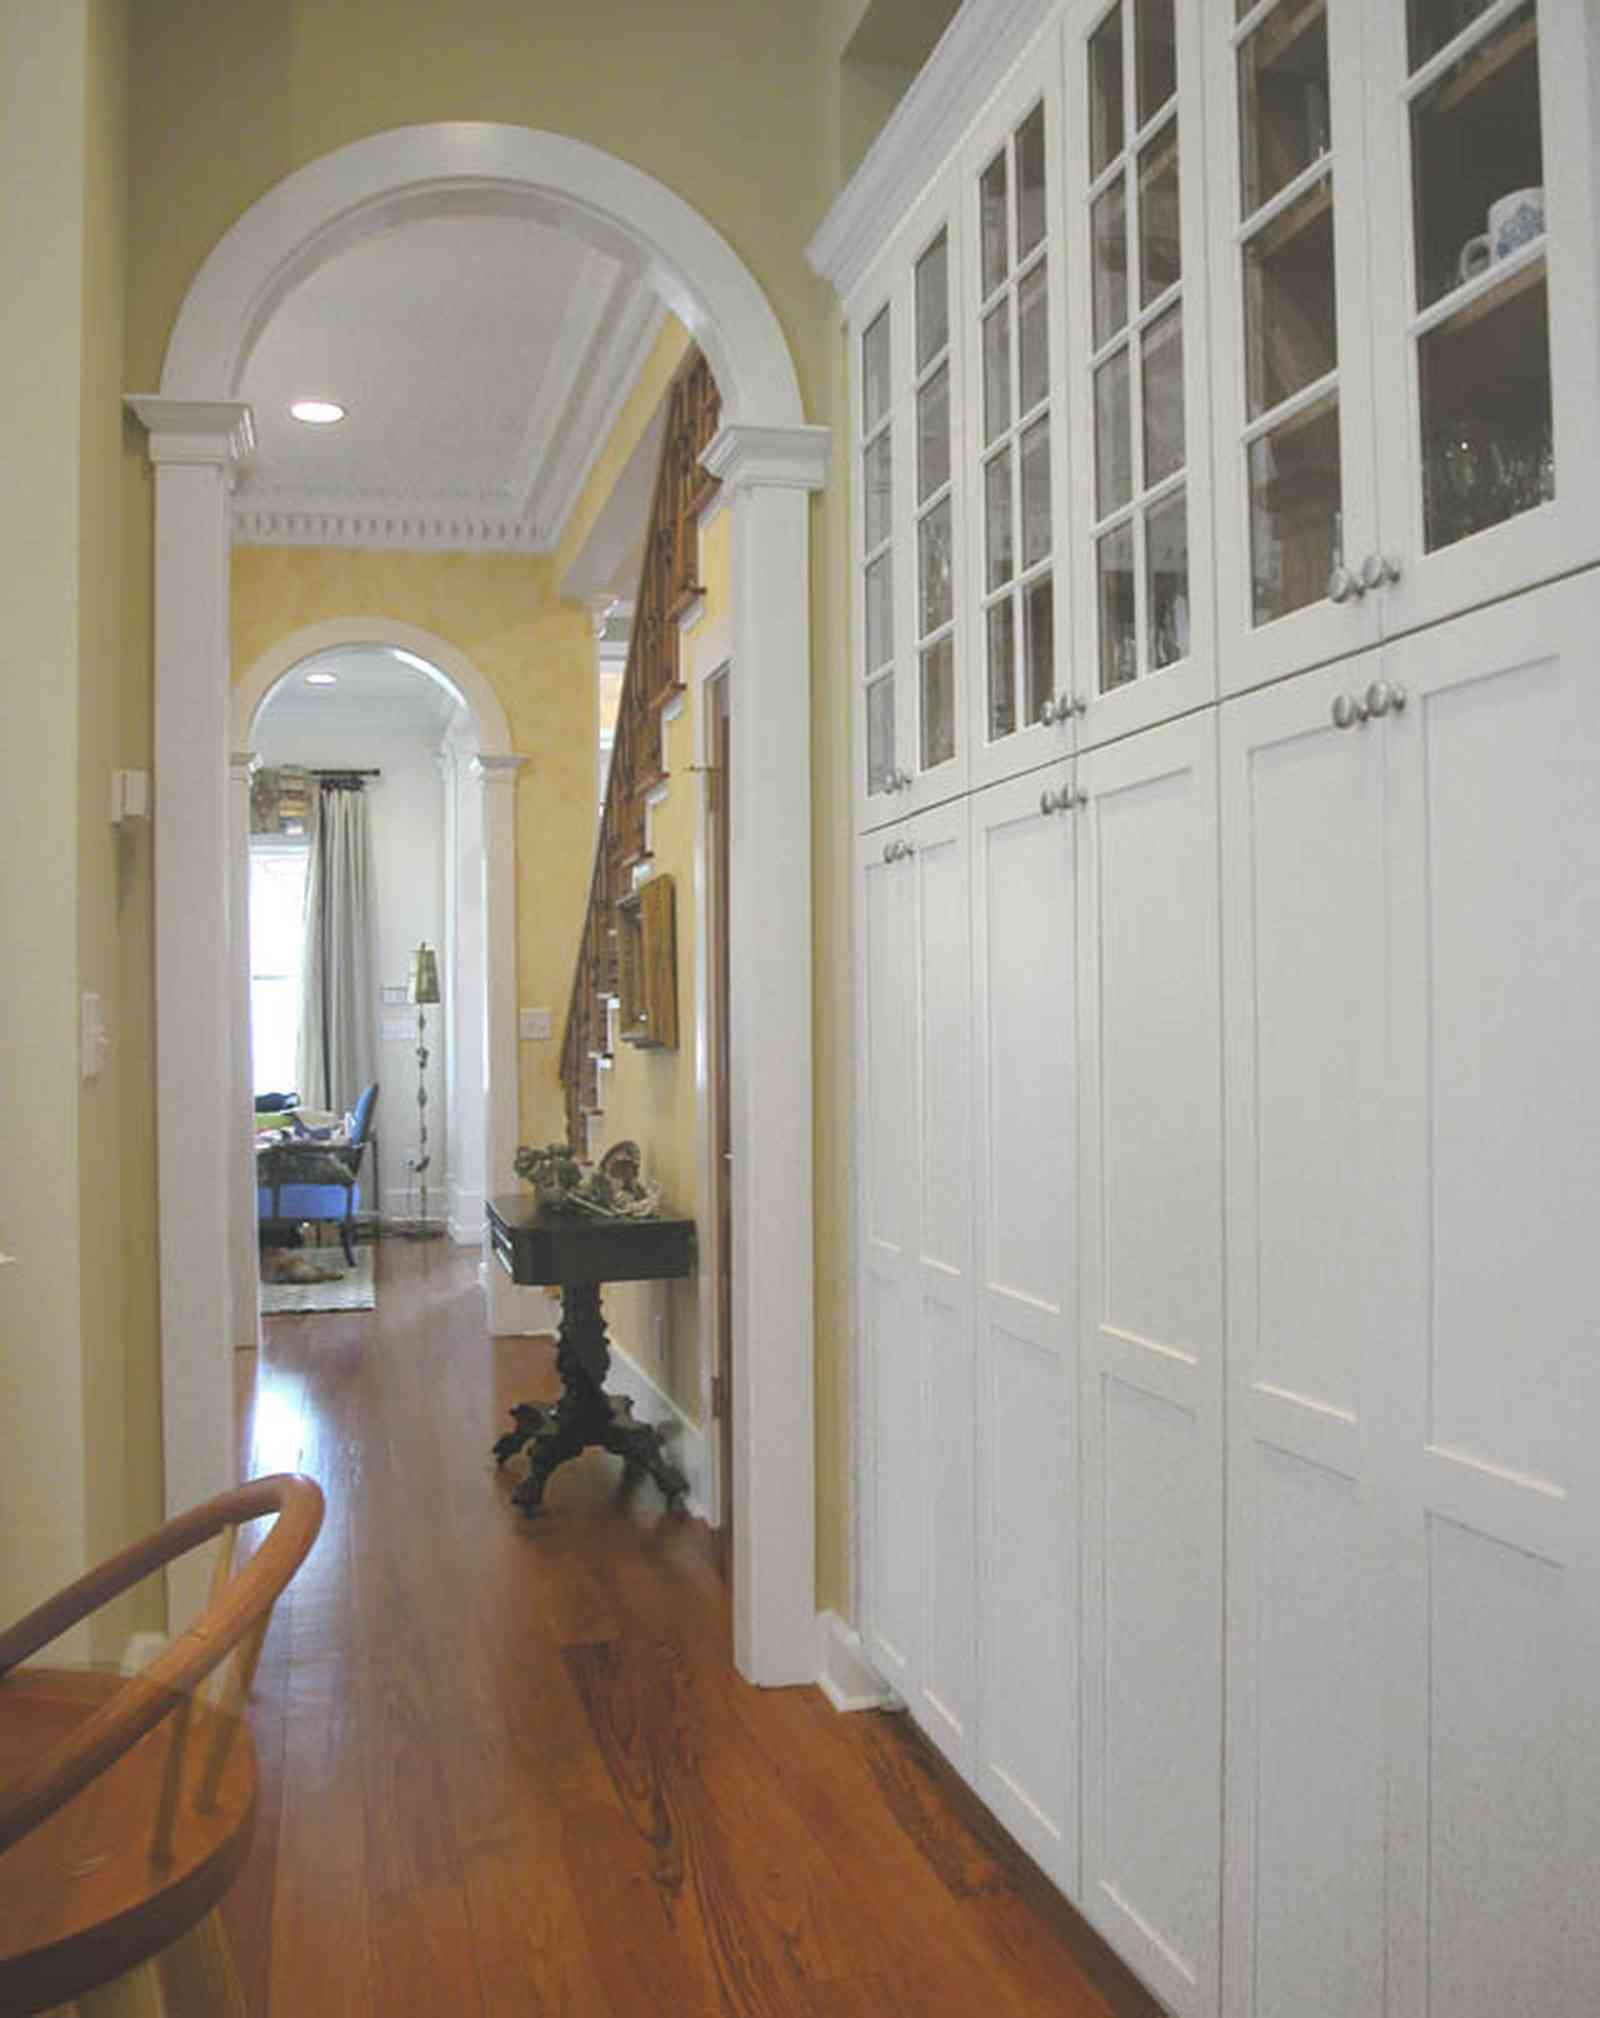 Pensacola:-Seville-Historic-District:-202-Cevallos-Street_13.jpg:  cabinets, heart pine floors, staircase, dining room, kitchen, columns, arcade, arched doorway